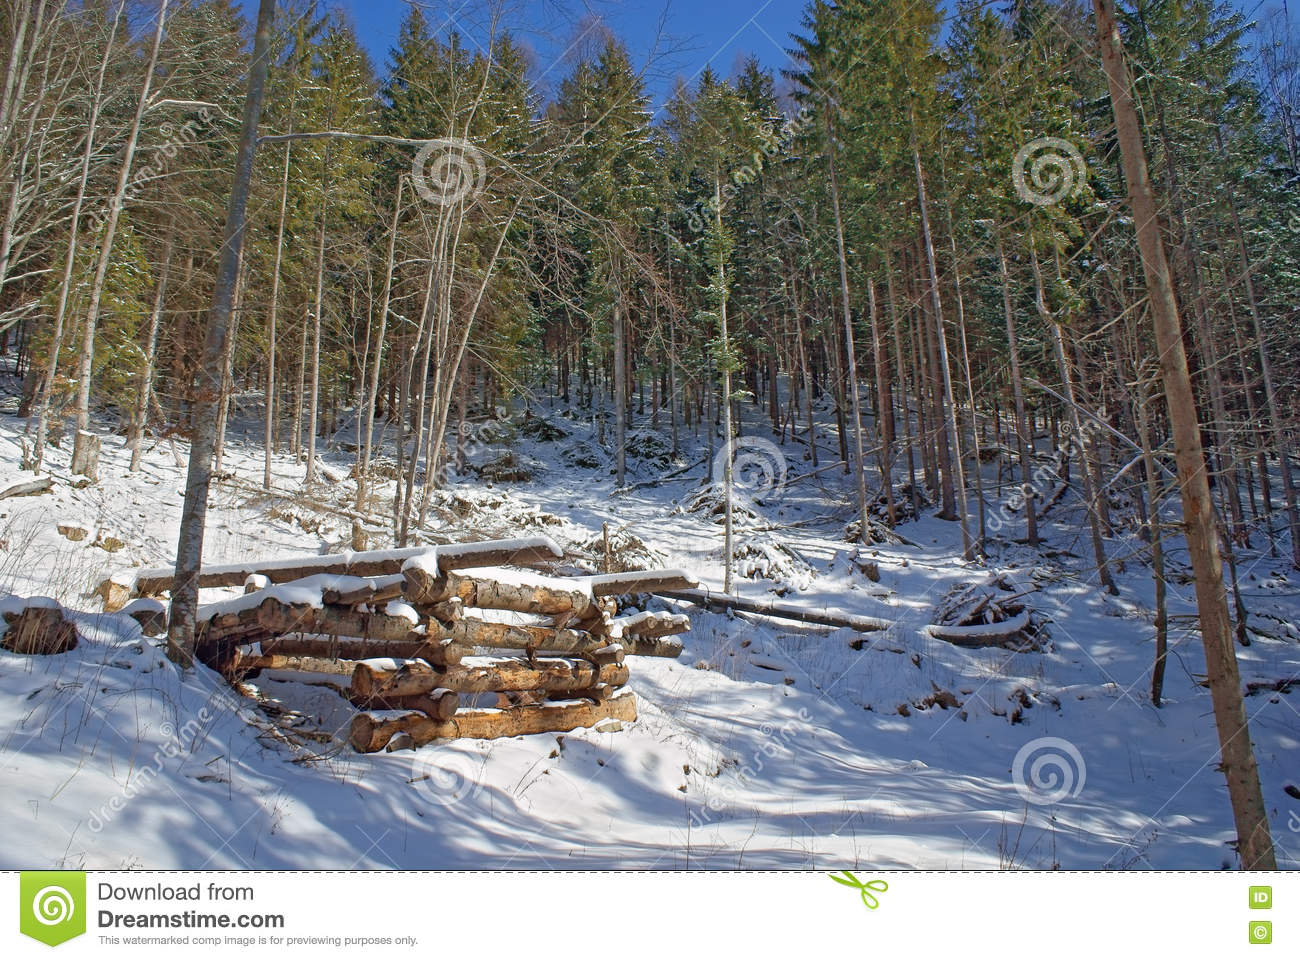 Timber structures for loading logs at slope in winter forest